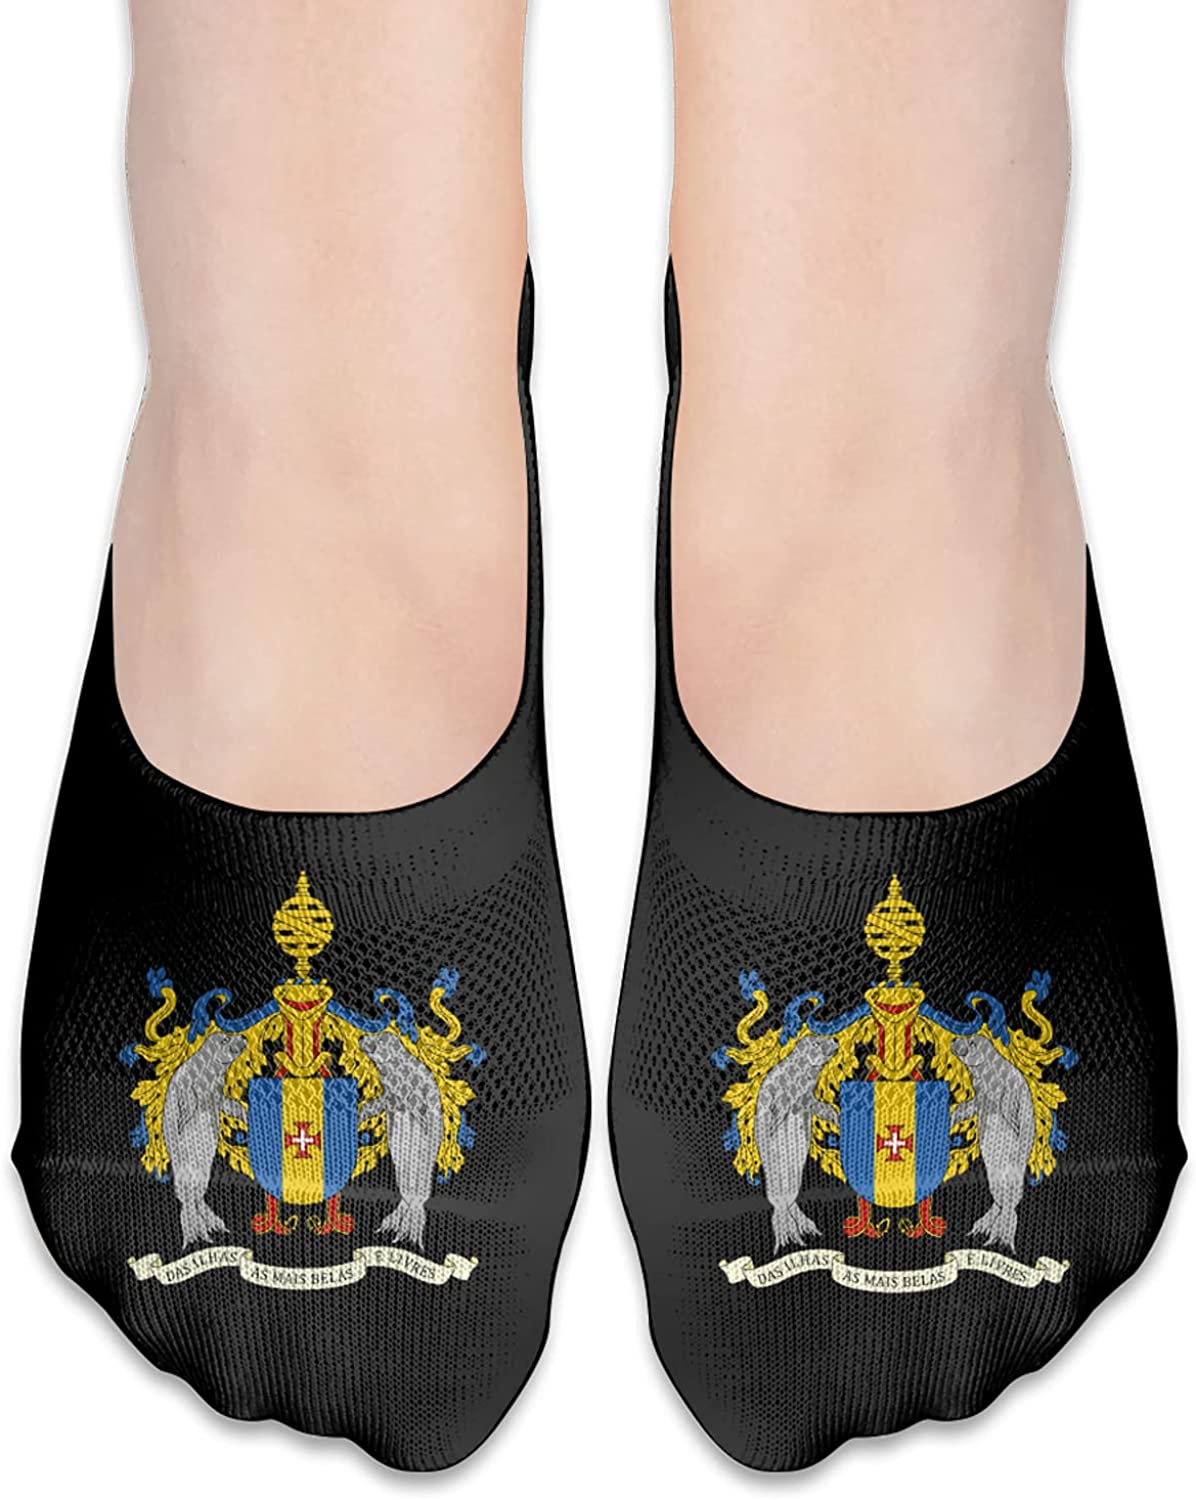 Swaziland Coats Of Arms Unisex Adult Breathable Liner Socks Non Slip No Show Ankle Socks Low Cut Invisible Socks